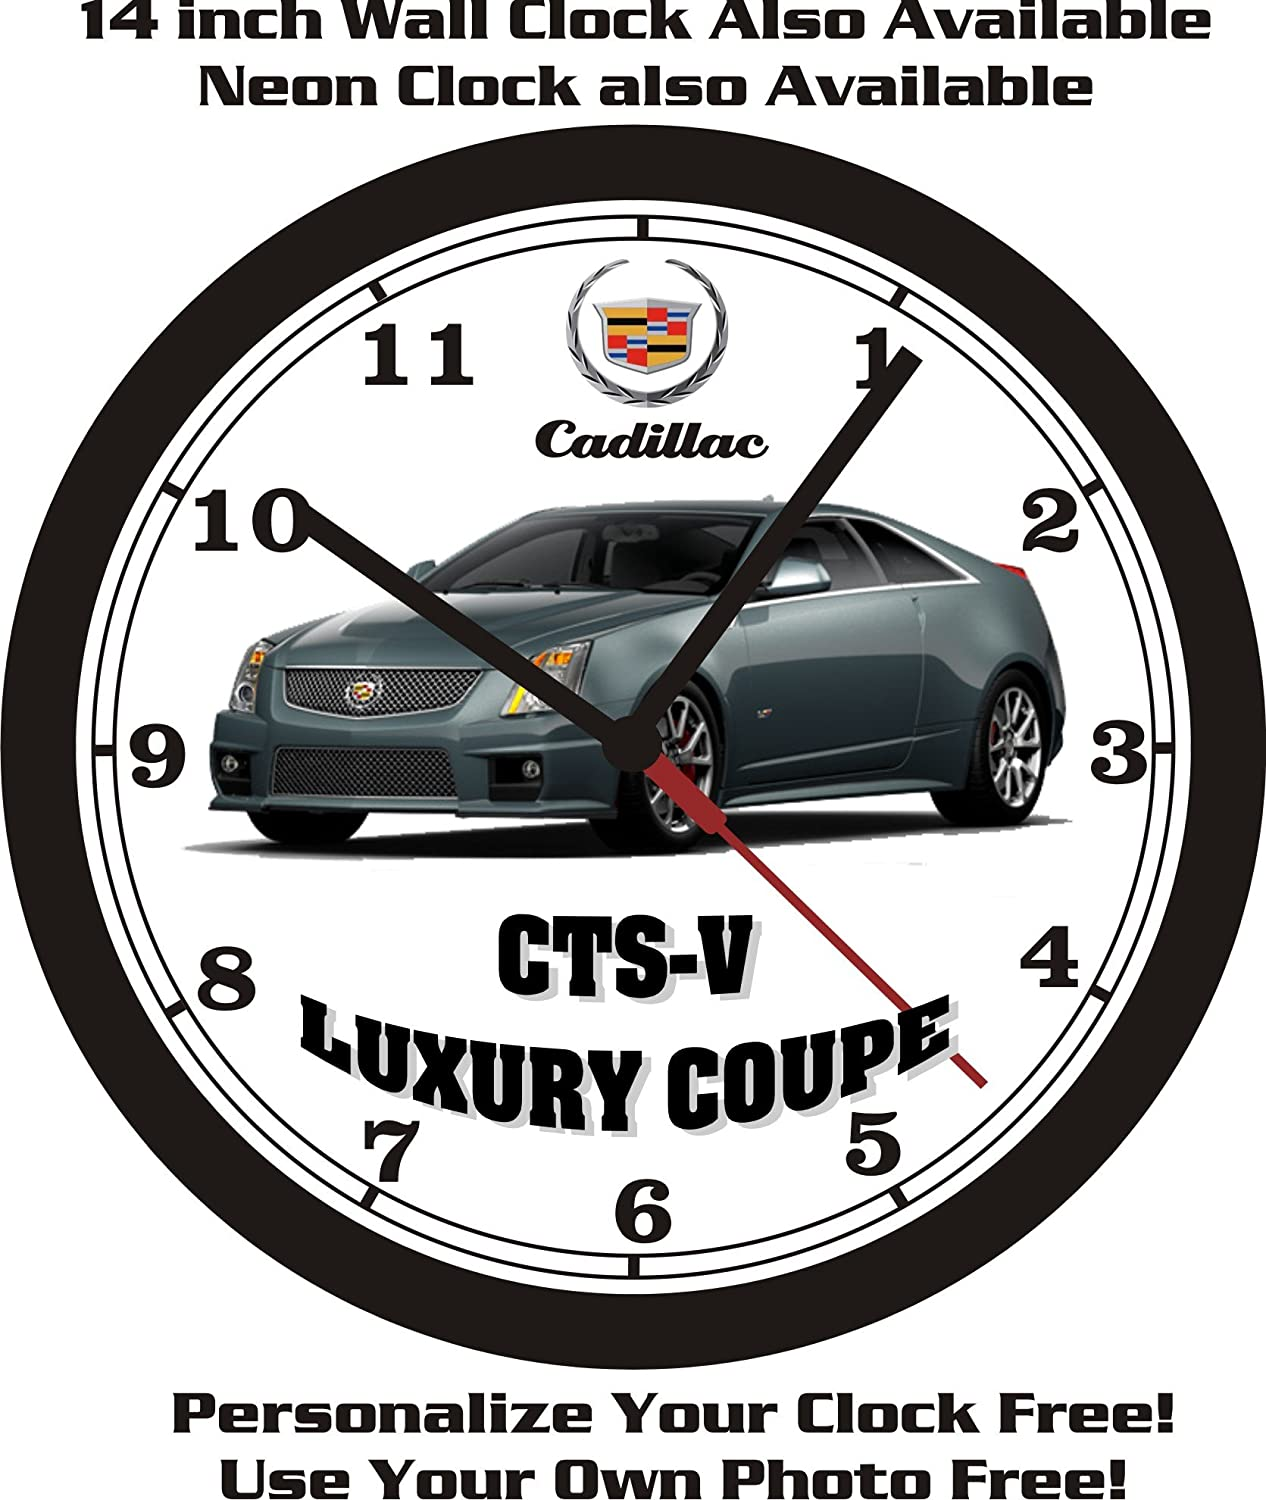 Amazon.com: 2013 CADILLAC CTS-V LUXURY COUPE WALL CLOCK-FREE USA SHIP!: Home & Kitchen